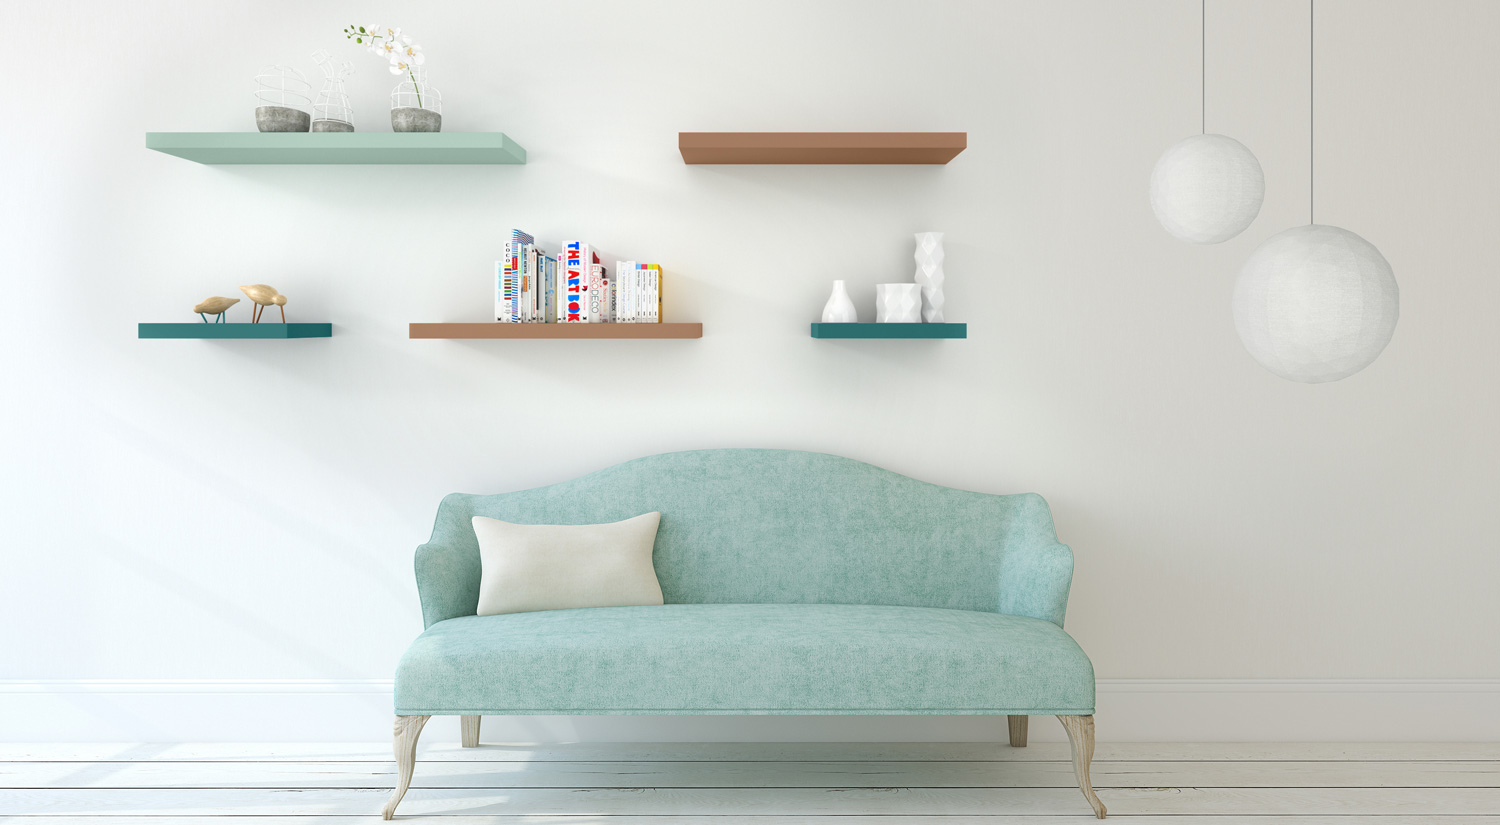 Bespoke Floating Shelves - BOY color deep-green, copper-brown and mint-green